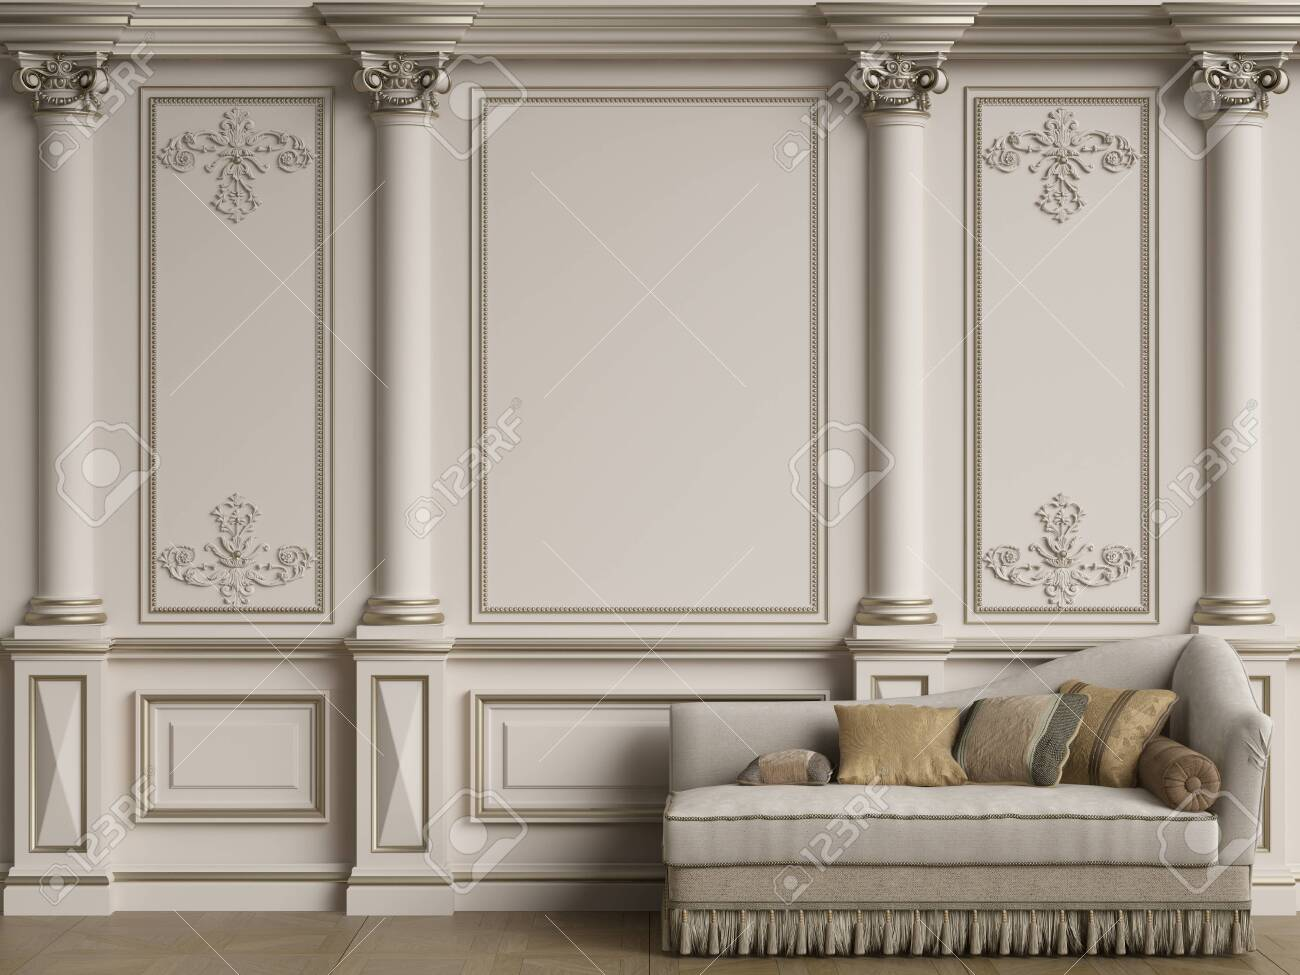 Classic furniture in classic interior with copy space.Walls with ornated moldings.Floor parquet.Digital Illustration.3d rendering - 155943371